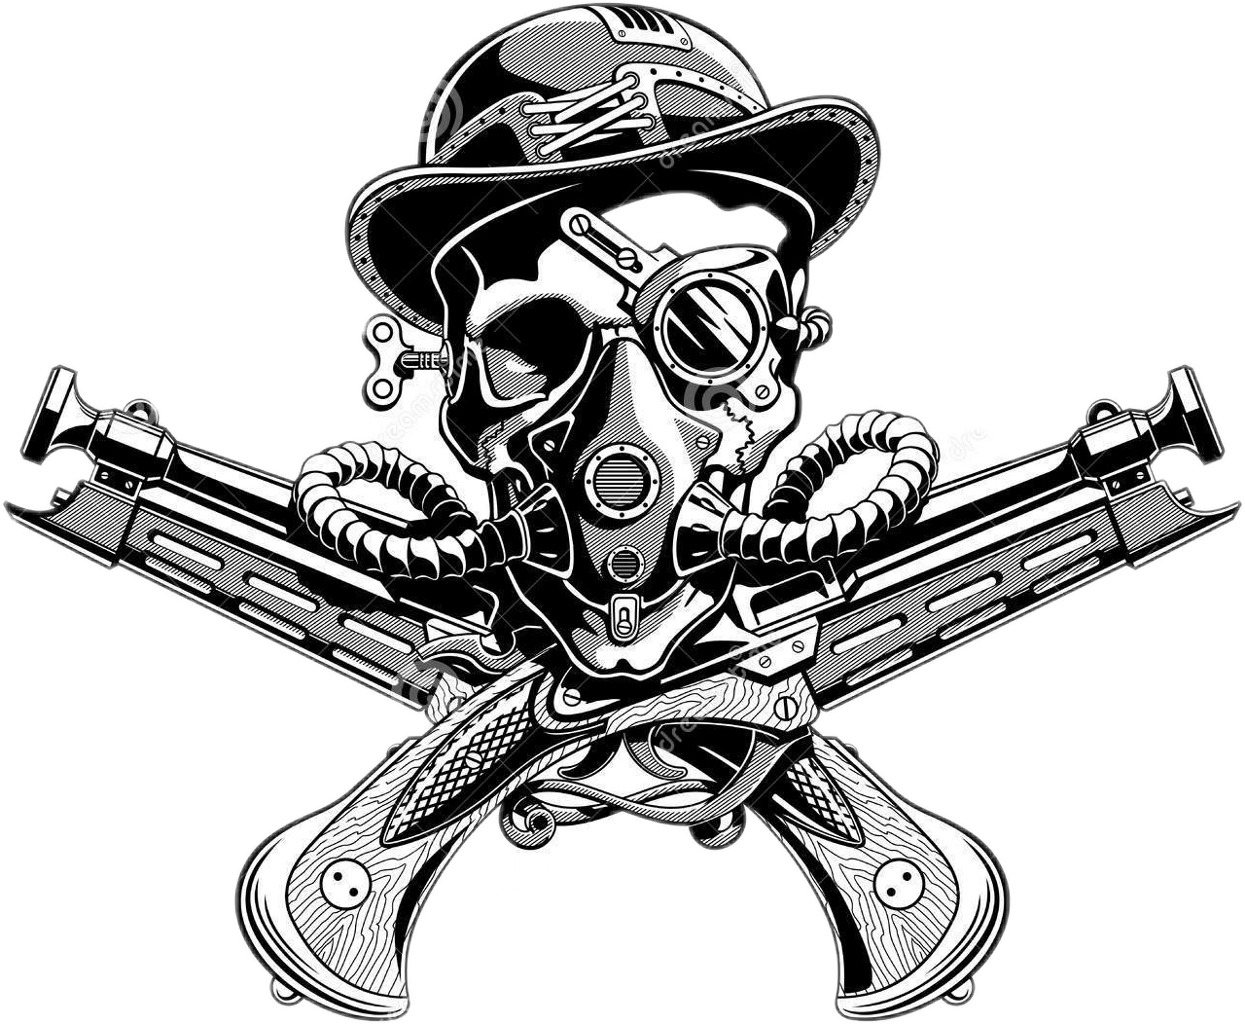 Weapon drawing steampunk. Freetoedit sticker by michael